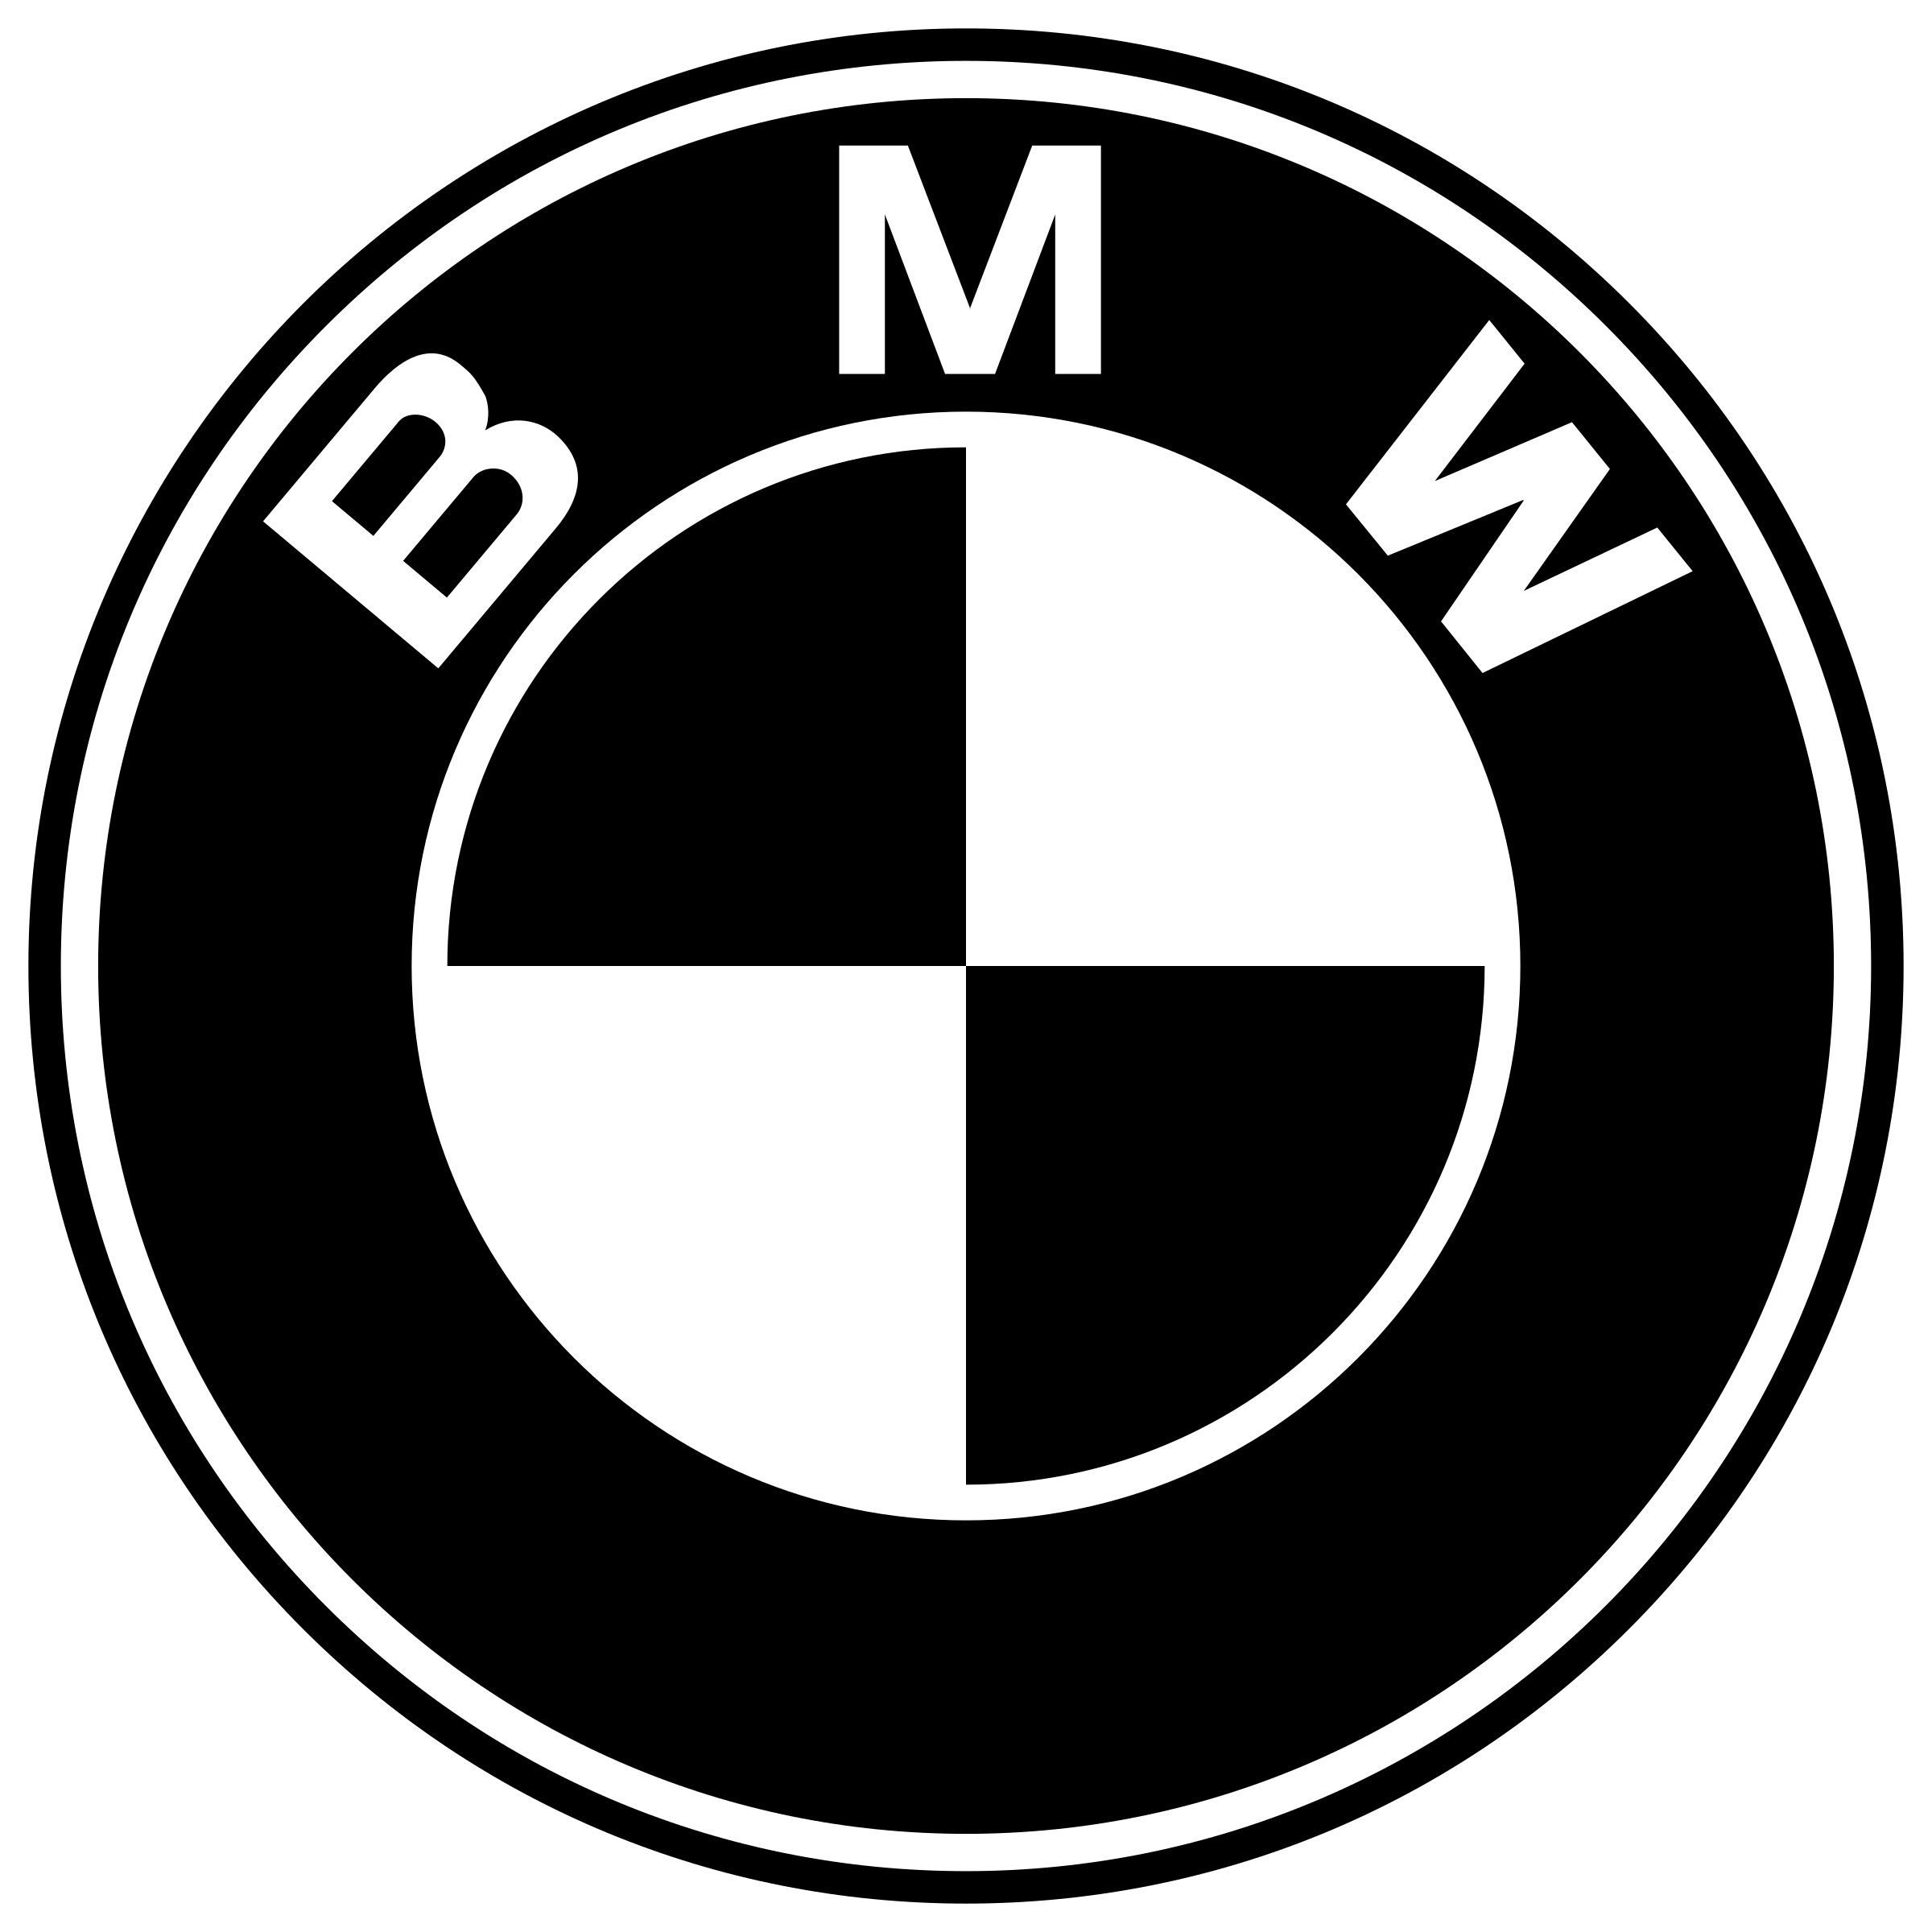 Bmw logo png white. Transparent svg vector freebie